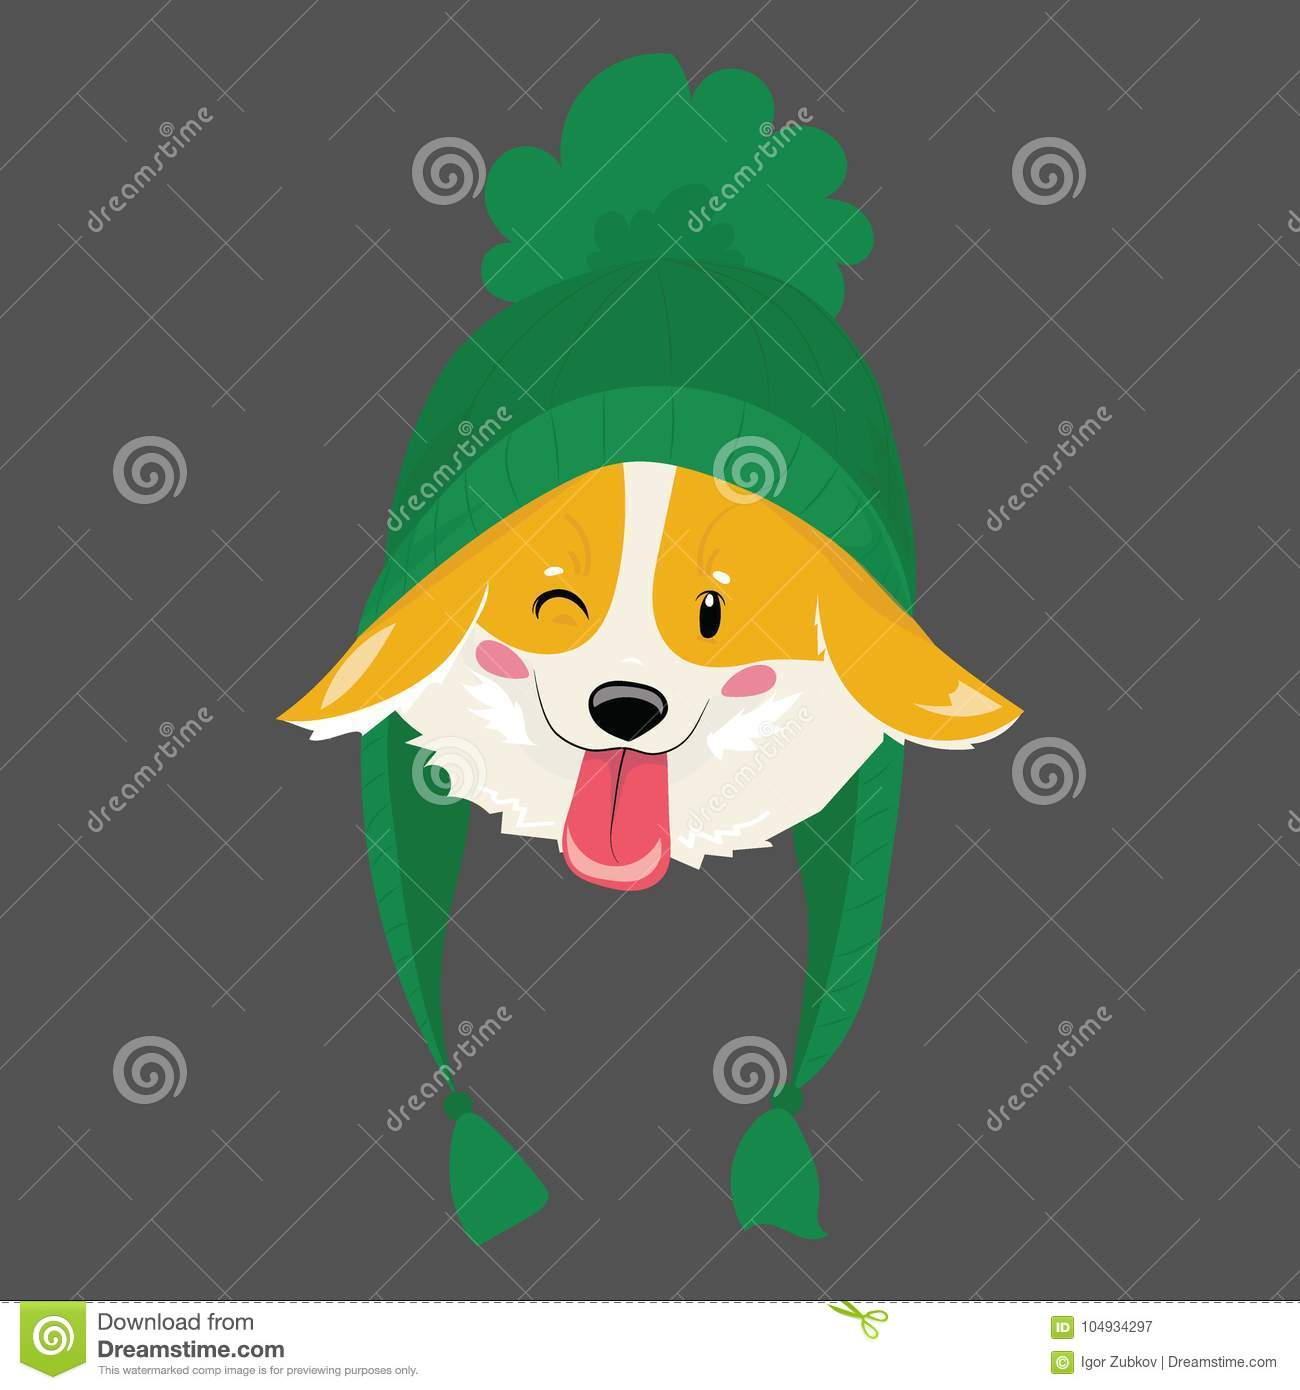 Cartoon portrait of a dog in a hat. Christmas cute dog. The symbol of the year. Vector illustration for a greeting card.